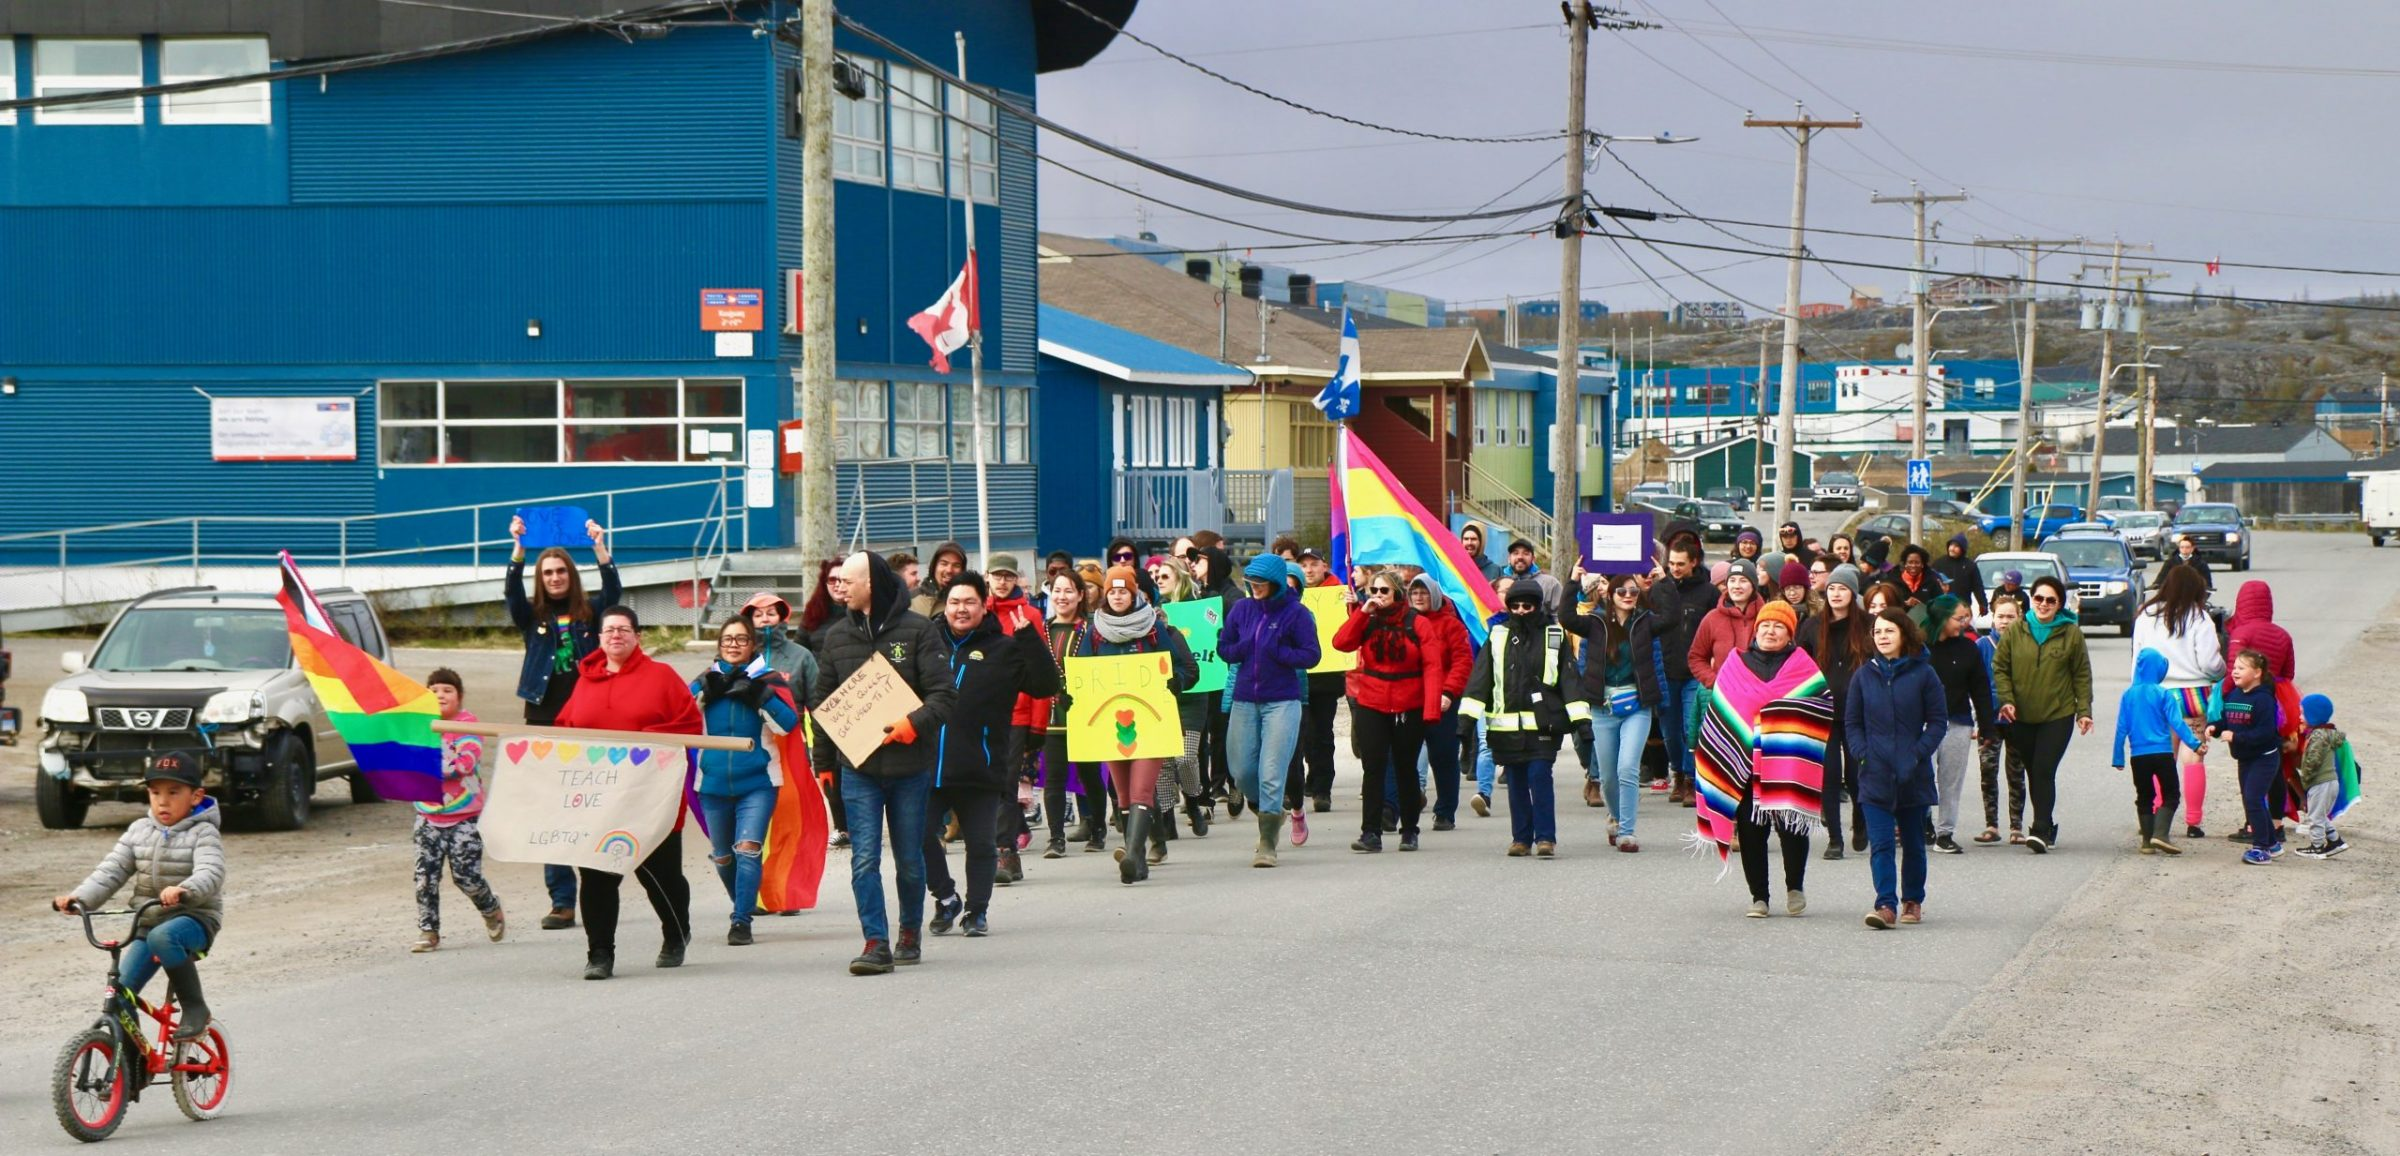 """Kuujjuaq residents participate in what organizers say is the community's first pride parade on Wednesday. About 80 people attended to show support for LGBTQ+ in the community. """"The group had lots of positive feedback and everyone was excited and glad that Kuujjuaq had its first pride parade,"""" said organizer Aputi Unatweenuk. (Photo by Malaya Qaunirq Chapman)"""